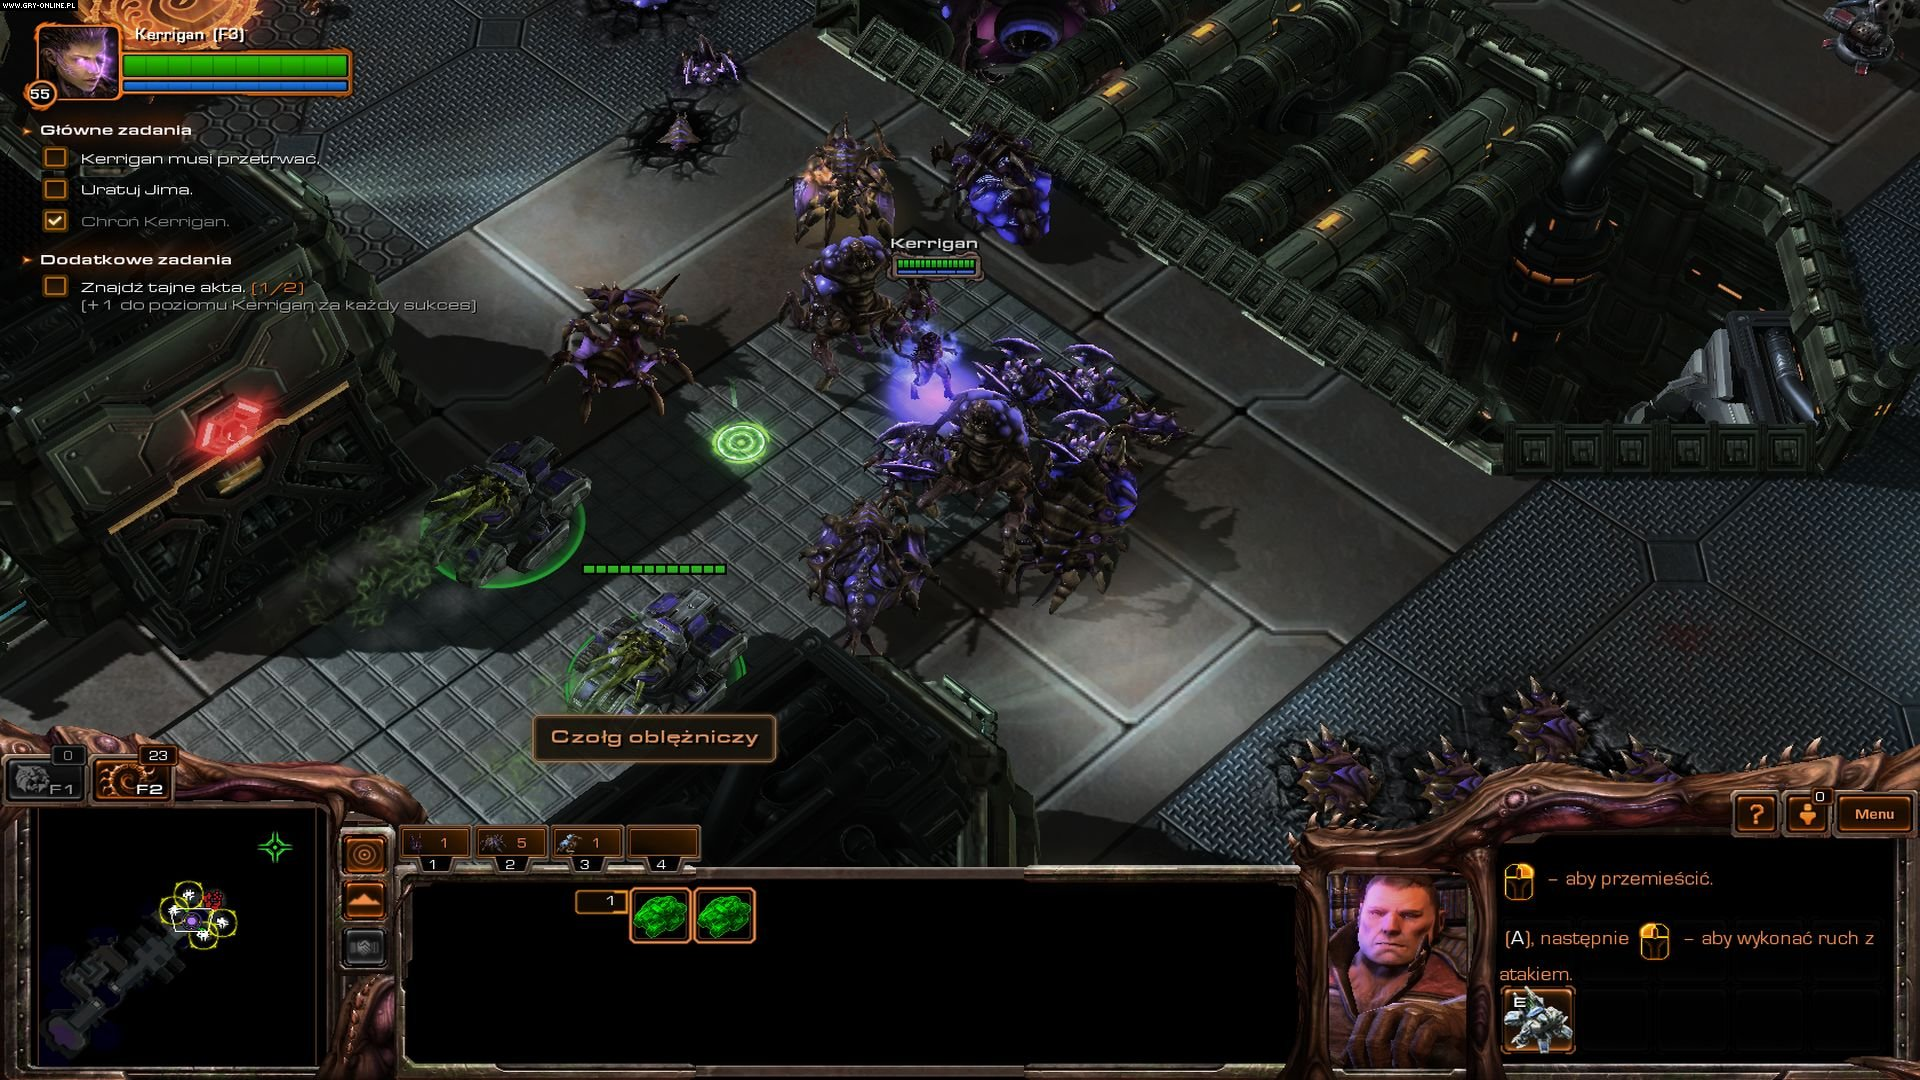 StarCraft II: Heart of the Swarm PC Gry Screen 6/199, Blizzard Entertainment